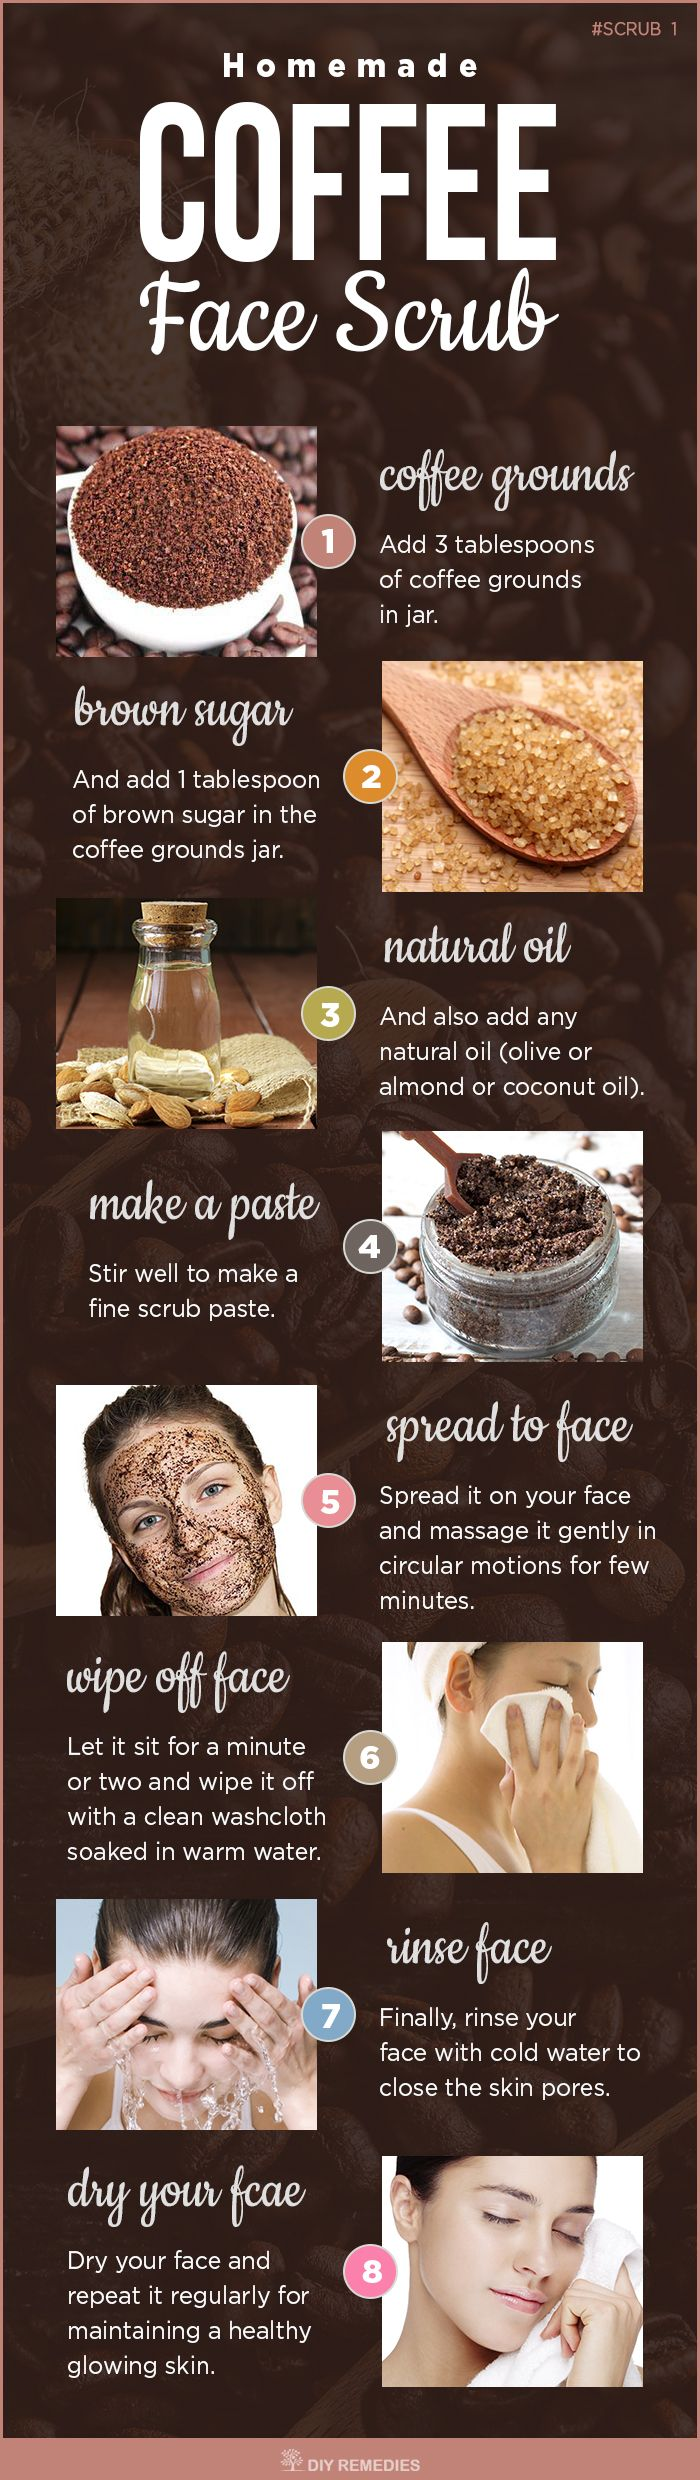 Diy Homemade Coffee Scrub